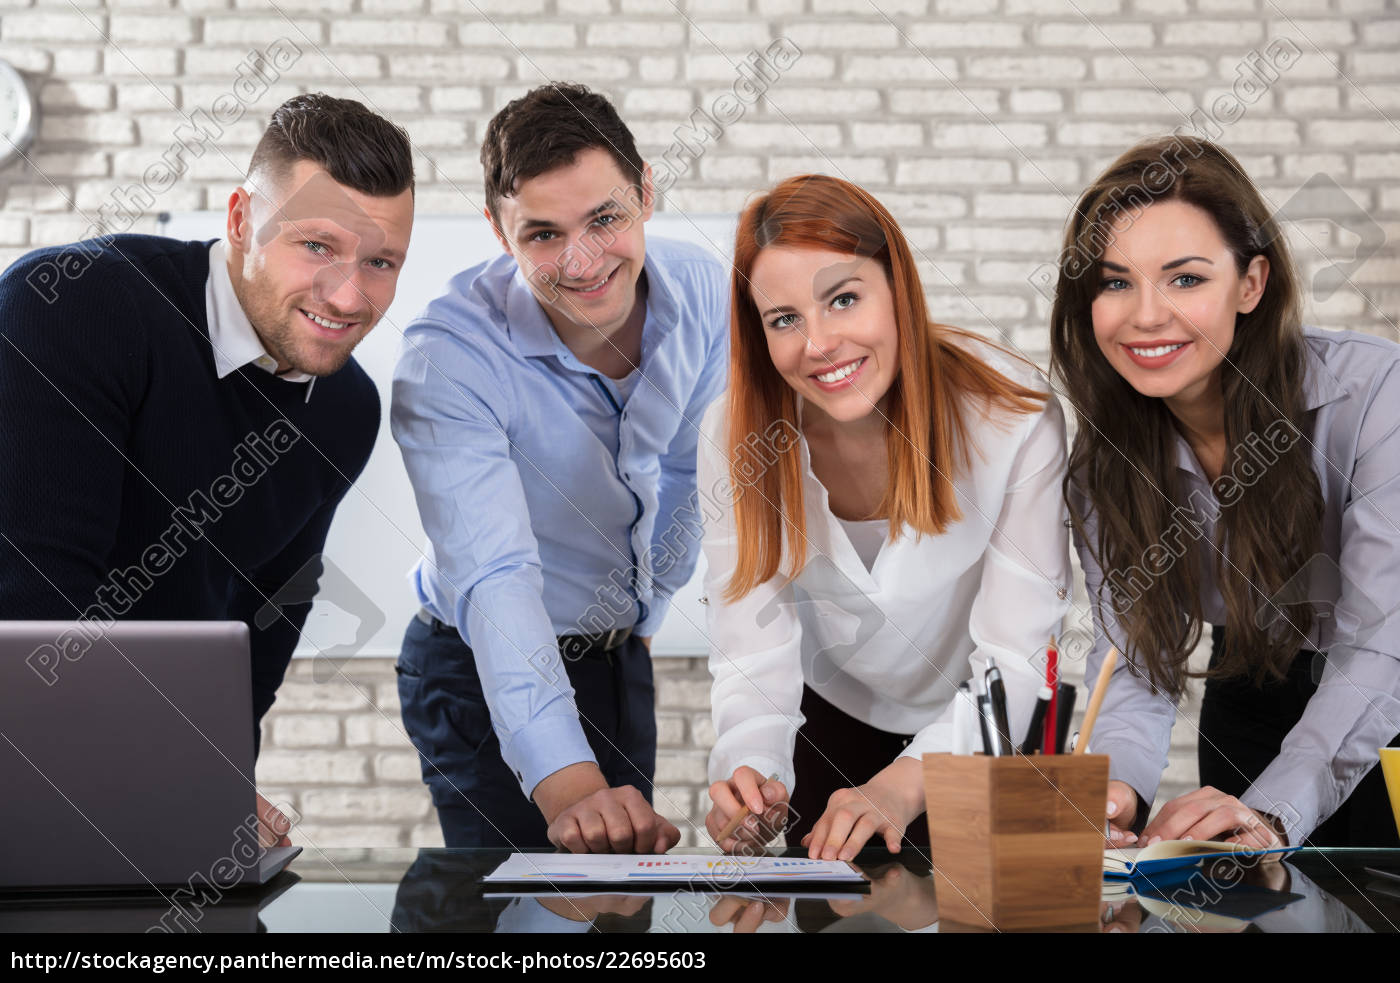 Royalty Free Image 22695603 Happy Business People Doing Work At Workplace